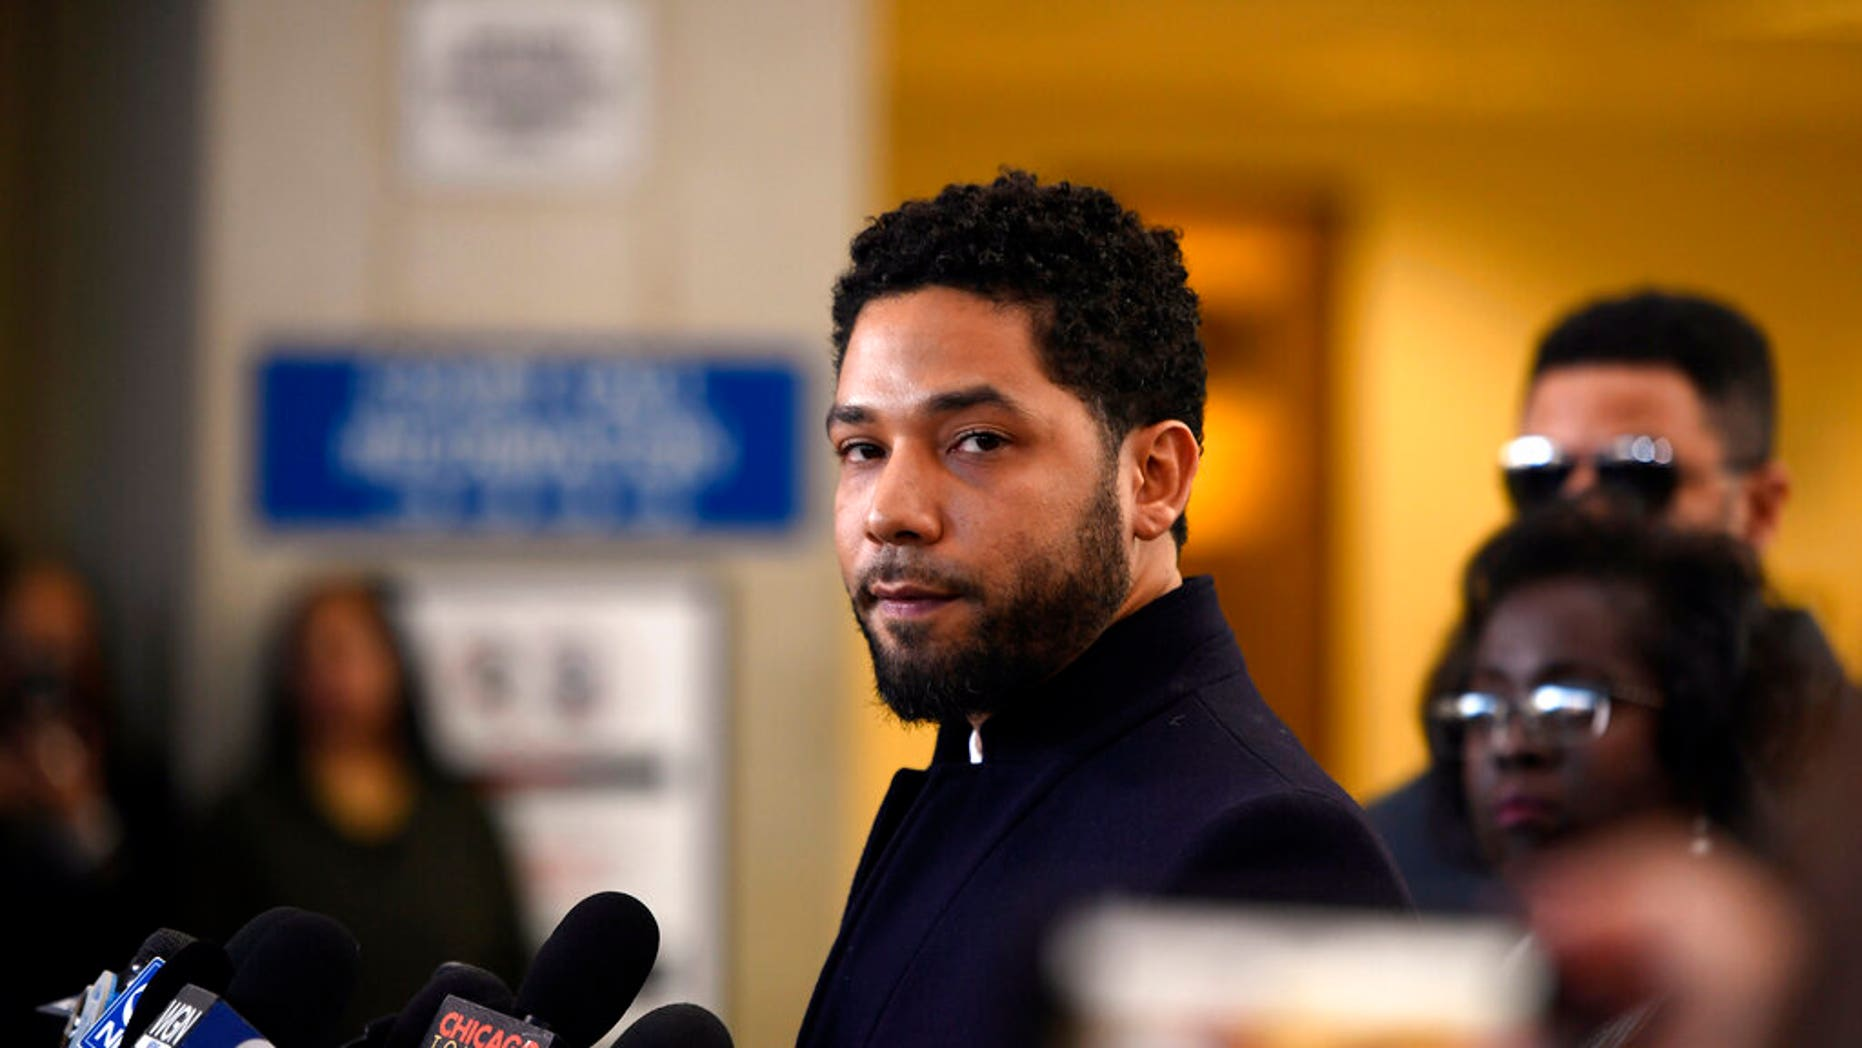 """FILE - In this March 26, 2019 file photo, Actor Jussie Smollett talks to the media before leaving Cook County Court after his charges were dropped, in Chicago. Chicago's top prosecutor has released 2,000 documents in the Jussie Smollett's case and explained she recused herself from an investigation into his claim he'd been the target of a racist, anti-gay attack solely because of false rumors she was related to the """"Empire"""" actor. The Friday, May 31, 2019 statement from Cook County State's Attorney Kim Foxx came two months after her office's suddenly dropped all charges against Smollett that accused him of staging the attack on himself. (AP Photo/Paul Beaty, File)"""